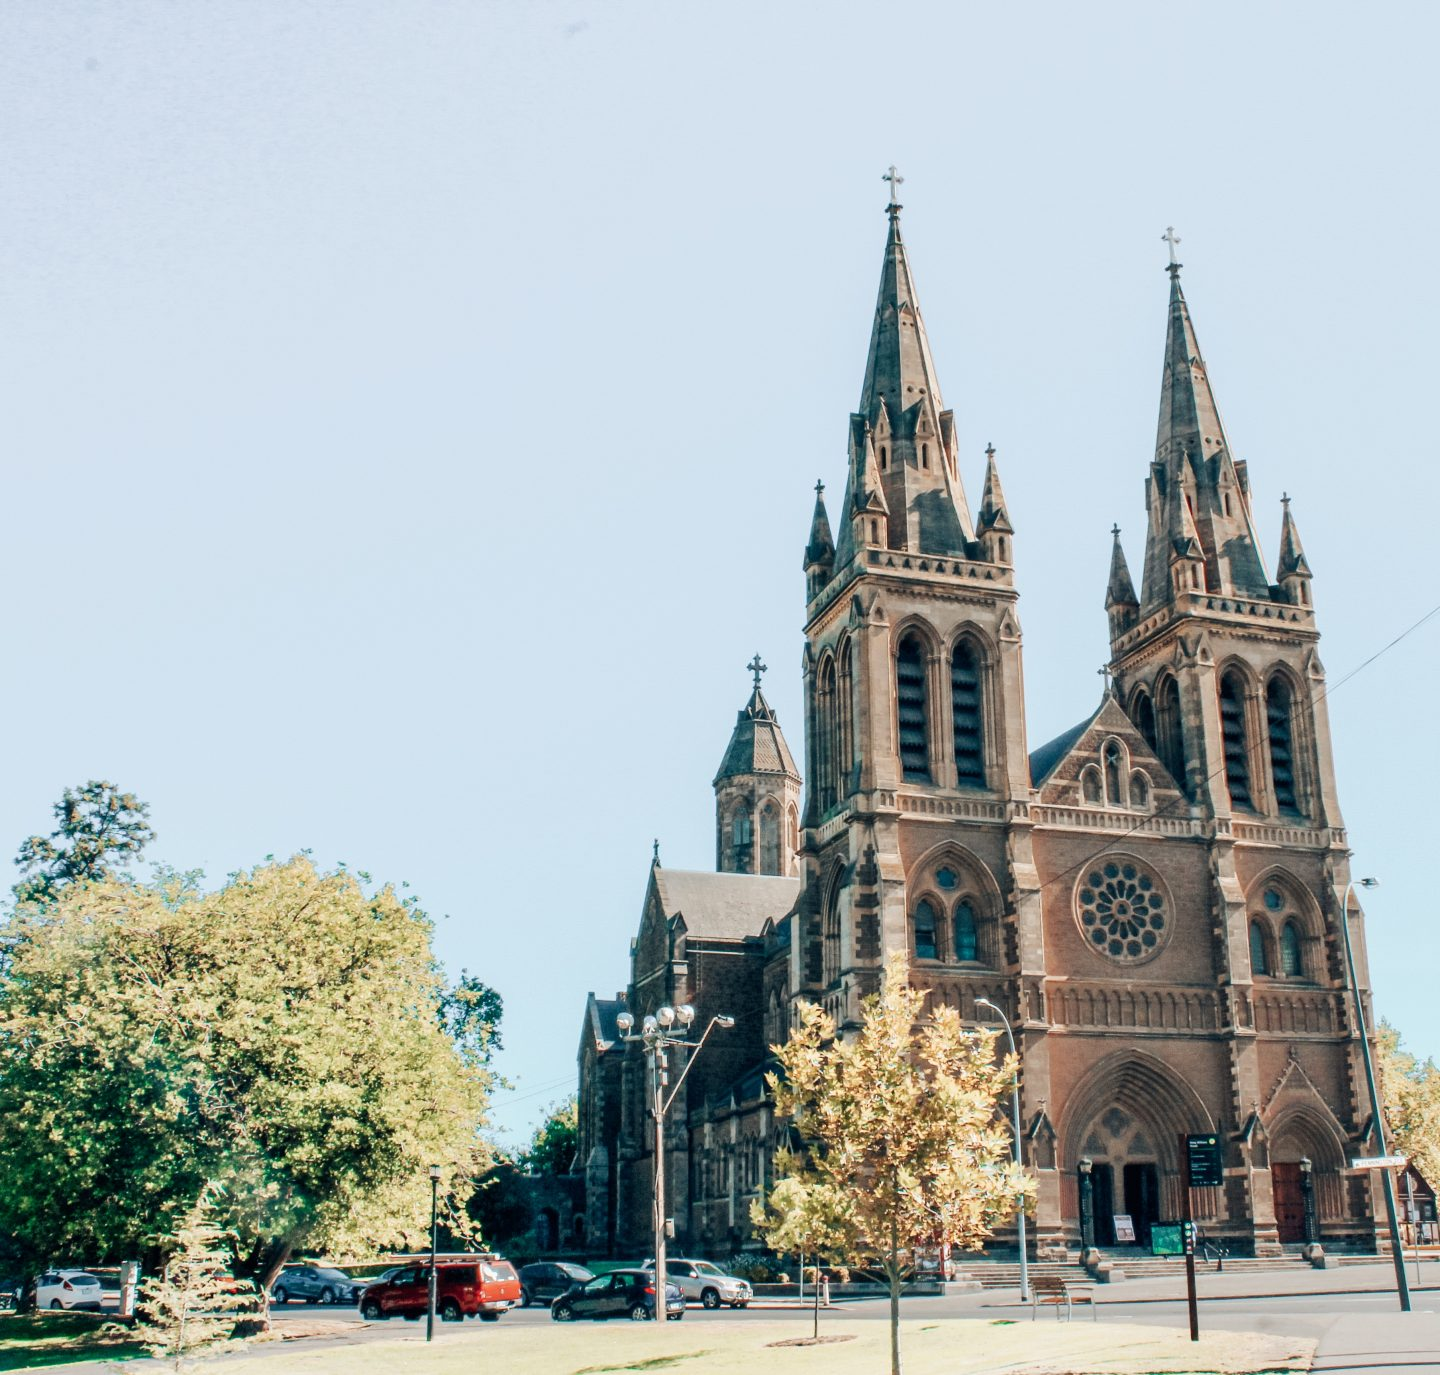 St. Peter's Church in Adelaide, South Australia!